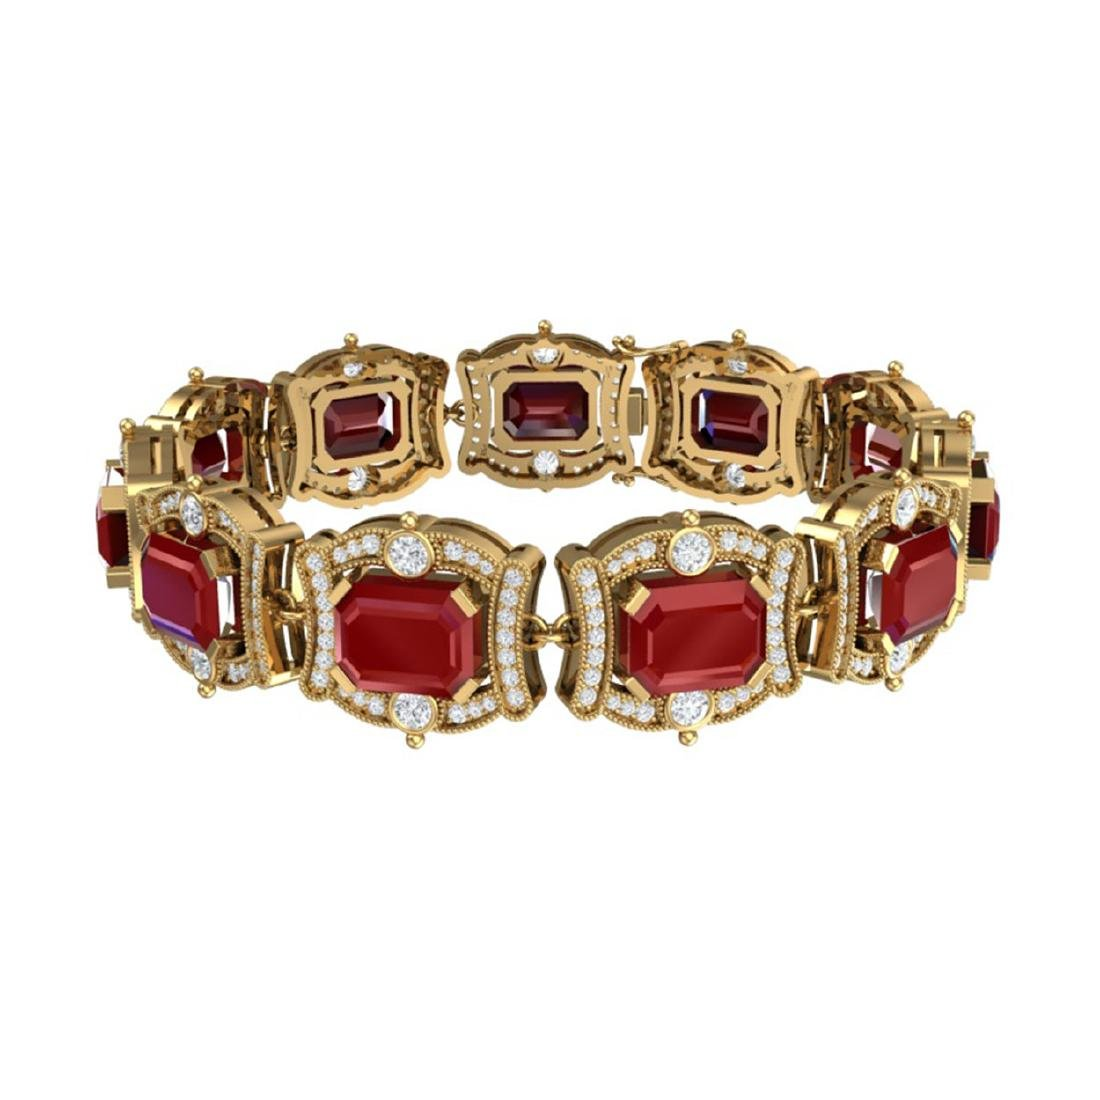 43.87 CTW Royalty Ruby & VS Diamond Bracelet 18K Yellow - 3